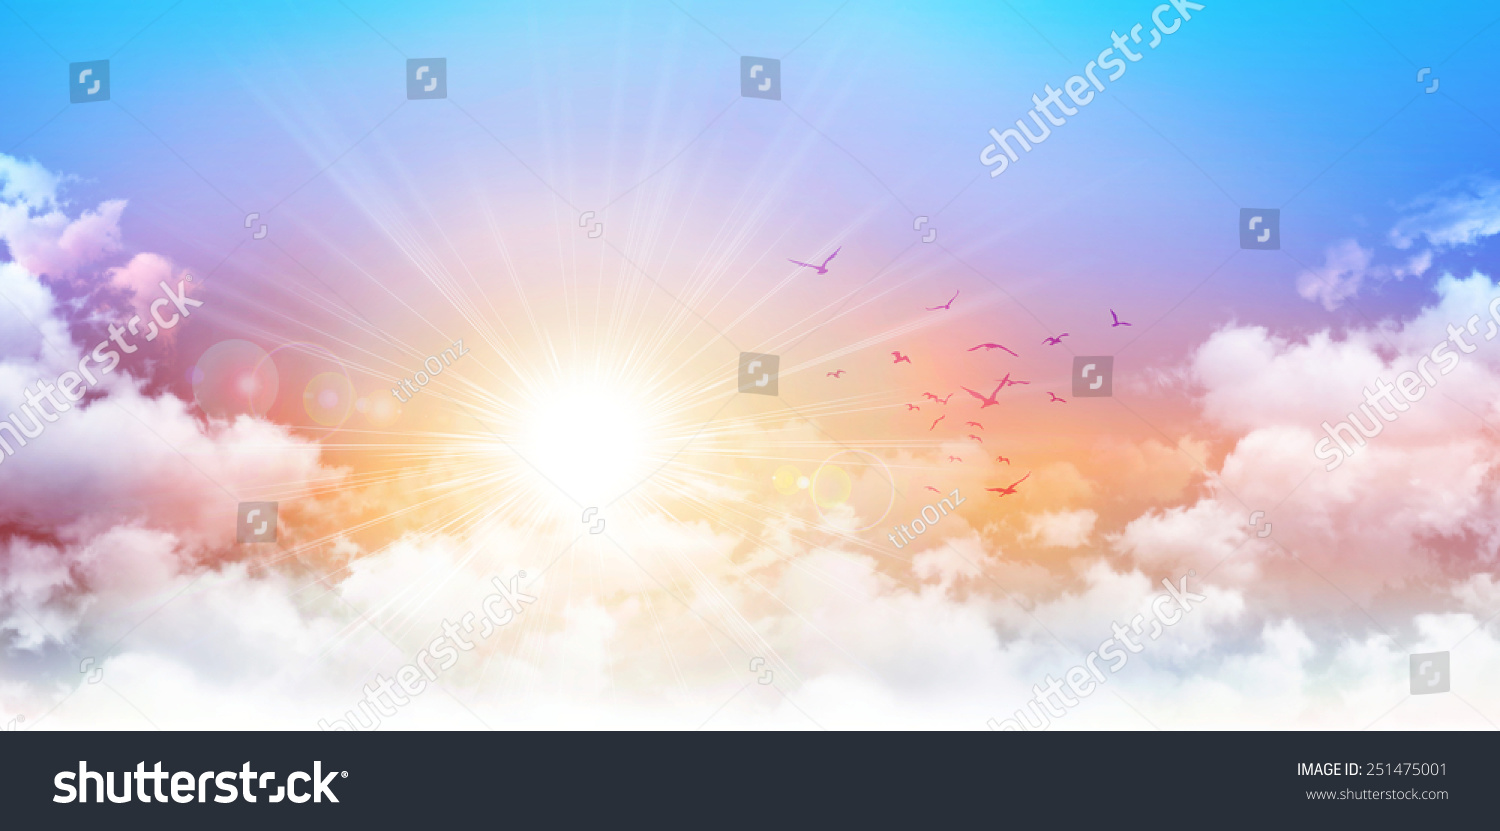 Panoramic sunrise. High resolution morning sky background. Rising sun and birds breaking through white clouds #251475001